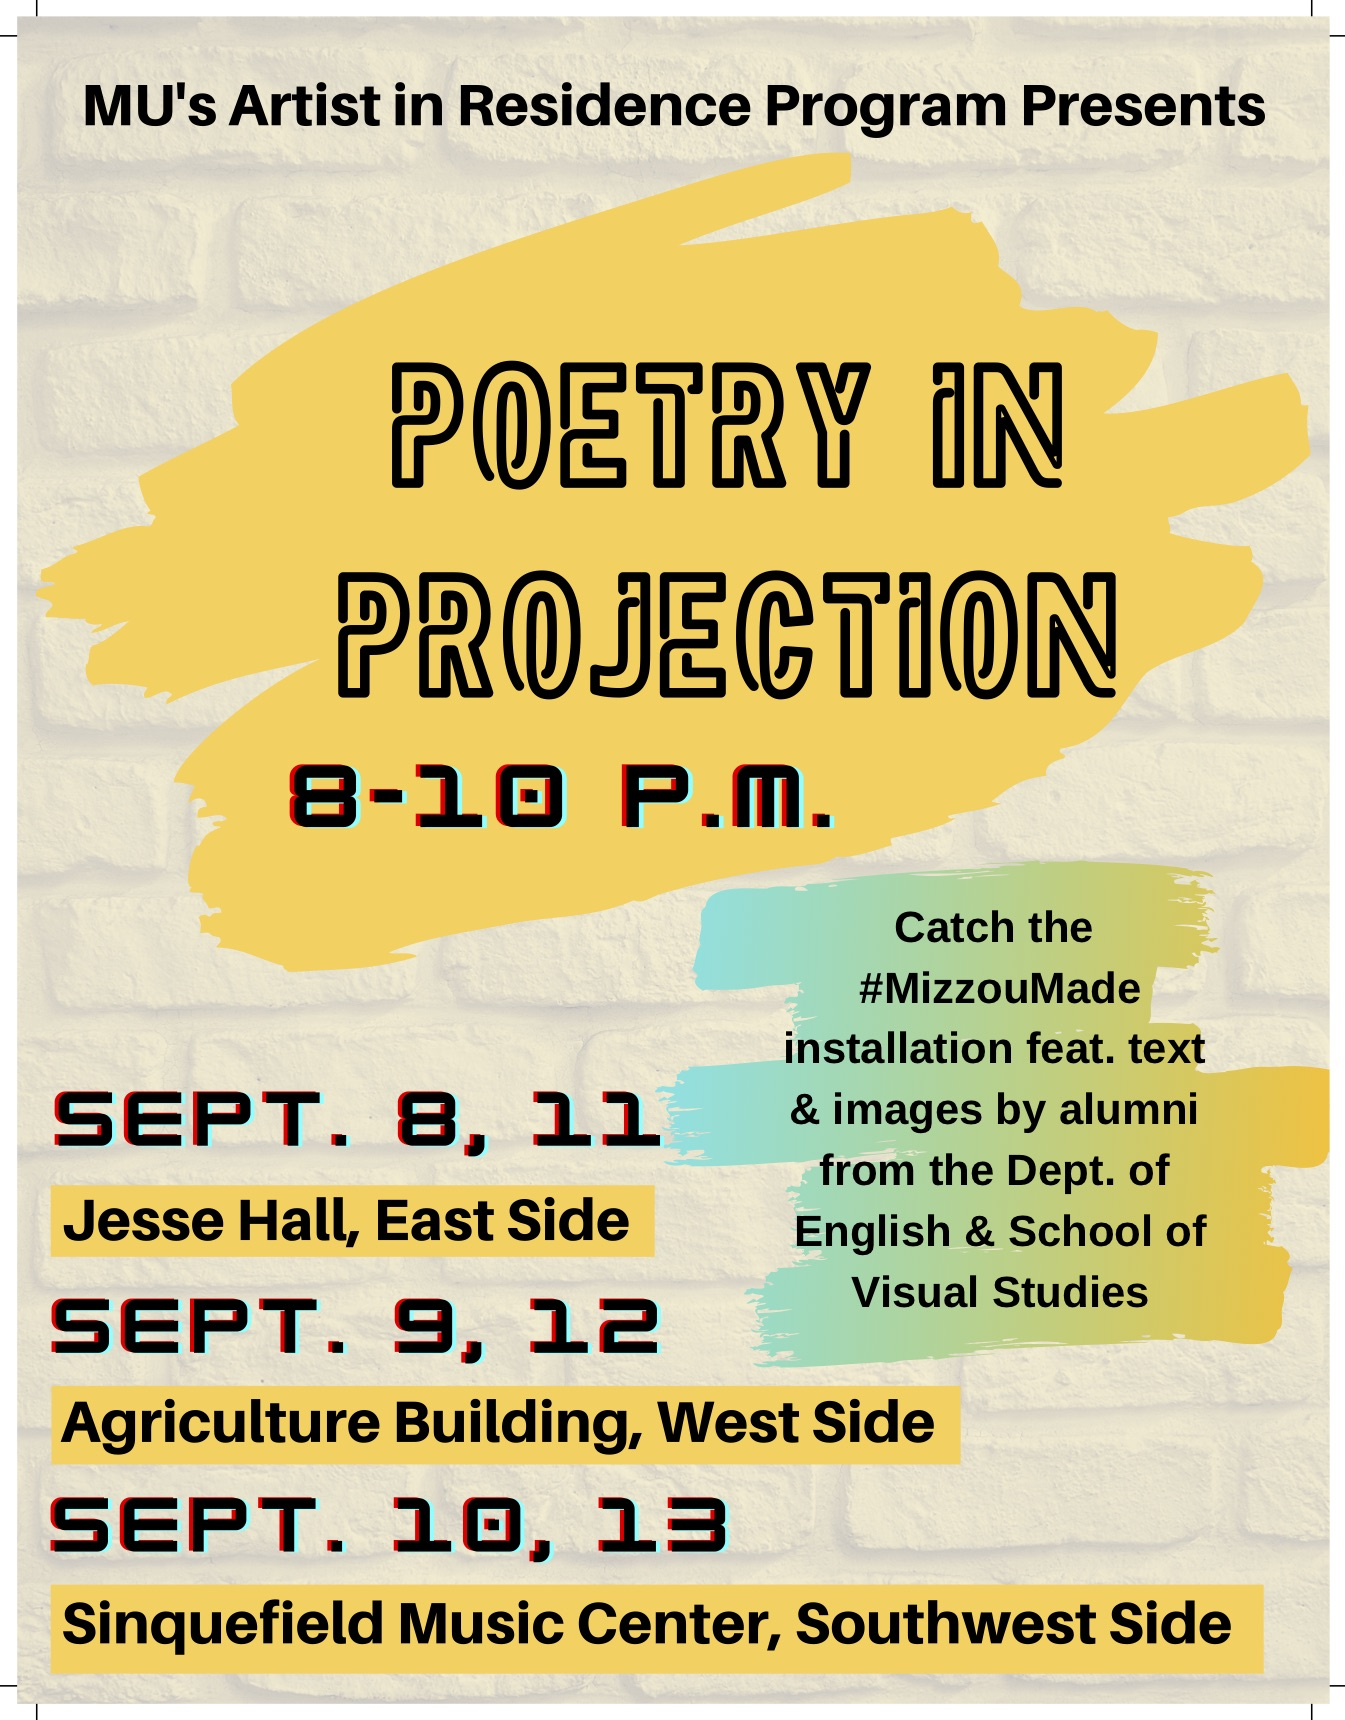 Peotry in Projection Flyer